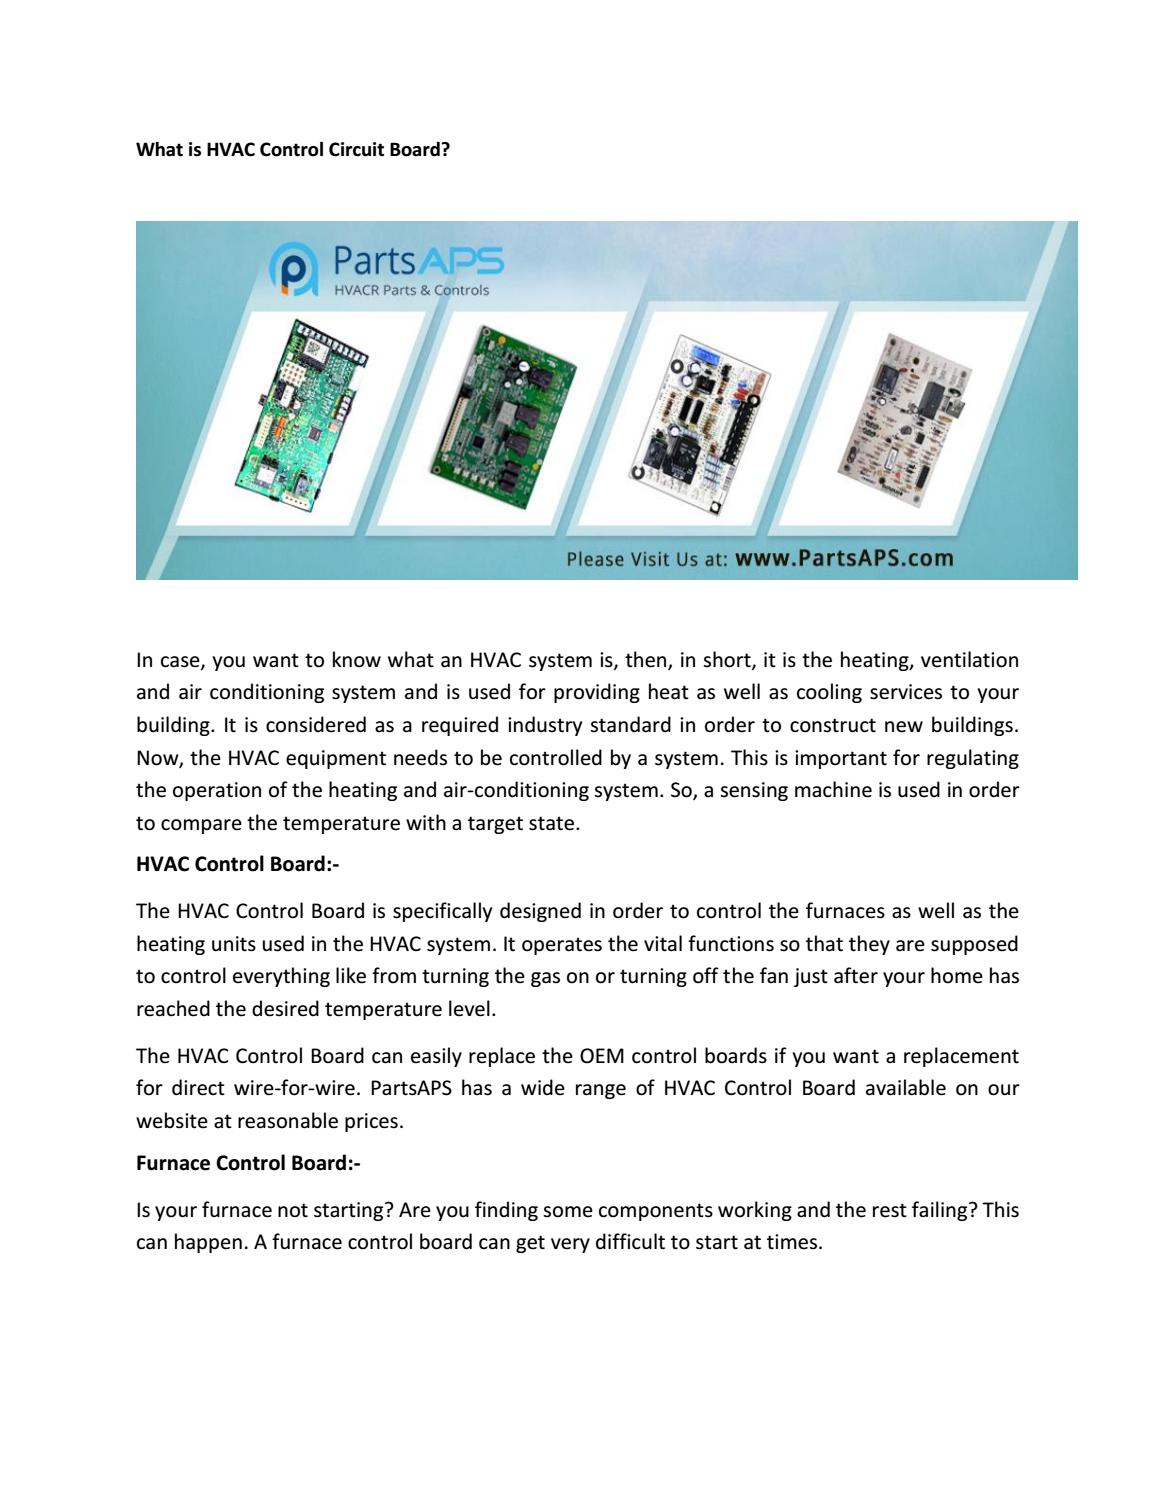 What Is Hvac Control Circuit Board Air Conditioner Parts Refrigerator Partsaps By Issuu